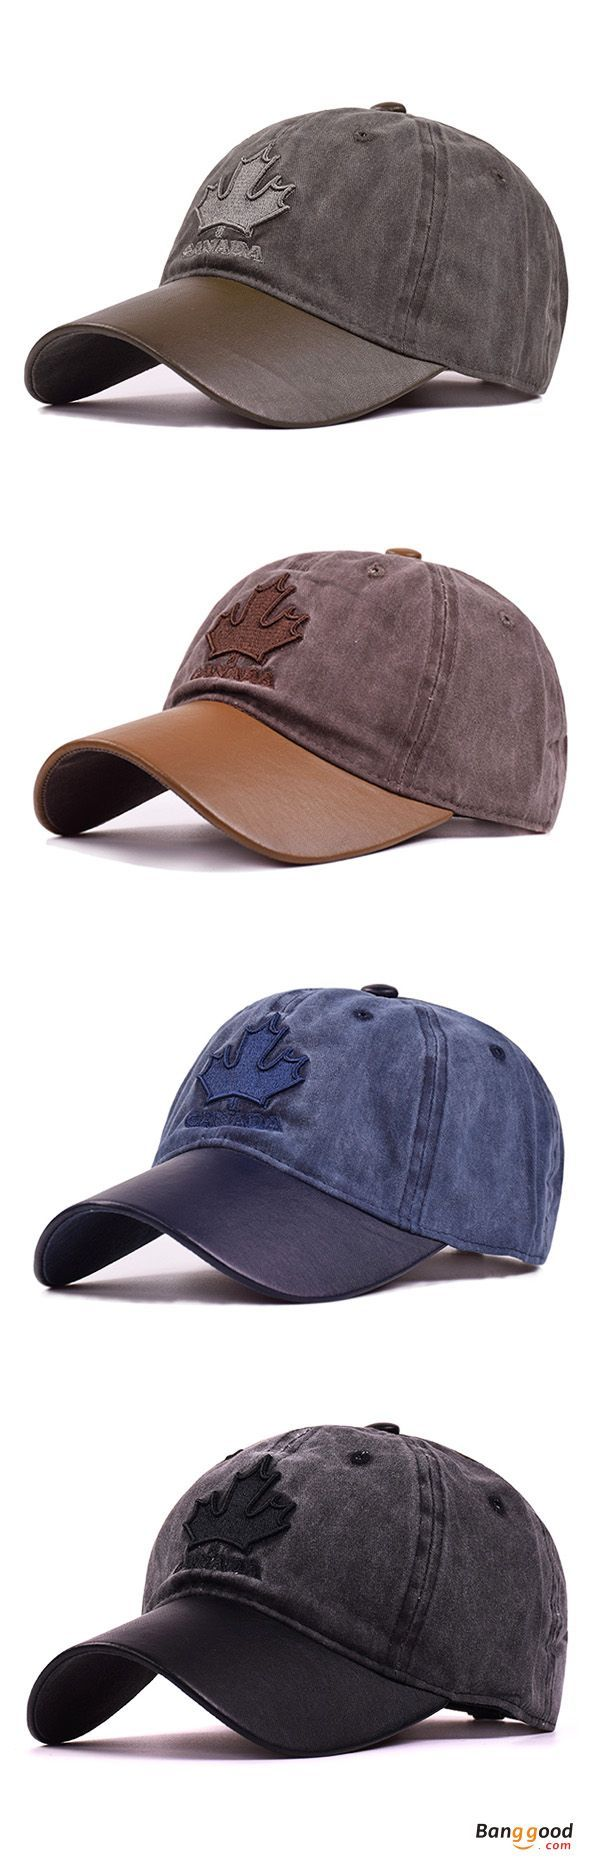 US$10.09+Free shipping. Men's Hats, Baseball Cap, Sports Adjustable Hats, Casual, Vintage, Cotton, Embroidery. Color: Khaki, Balck, Navy, Army Green. Shop now~ A website should not just draw attention. The role of a website is to attract and engage the user as well as communicate your brand and raise awareness about a product or service.  We offer professional SEO services that help websites increase their organic search score drastically in order to compete for the highest rankings — even…